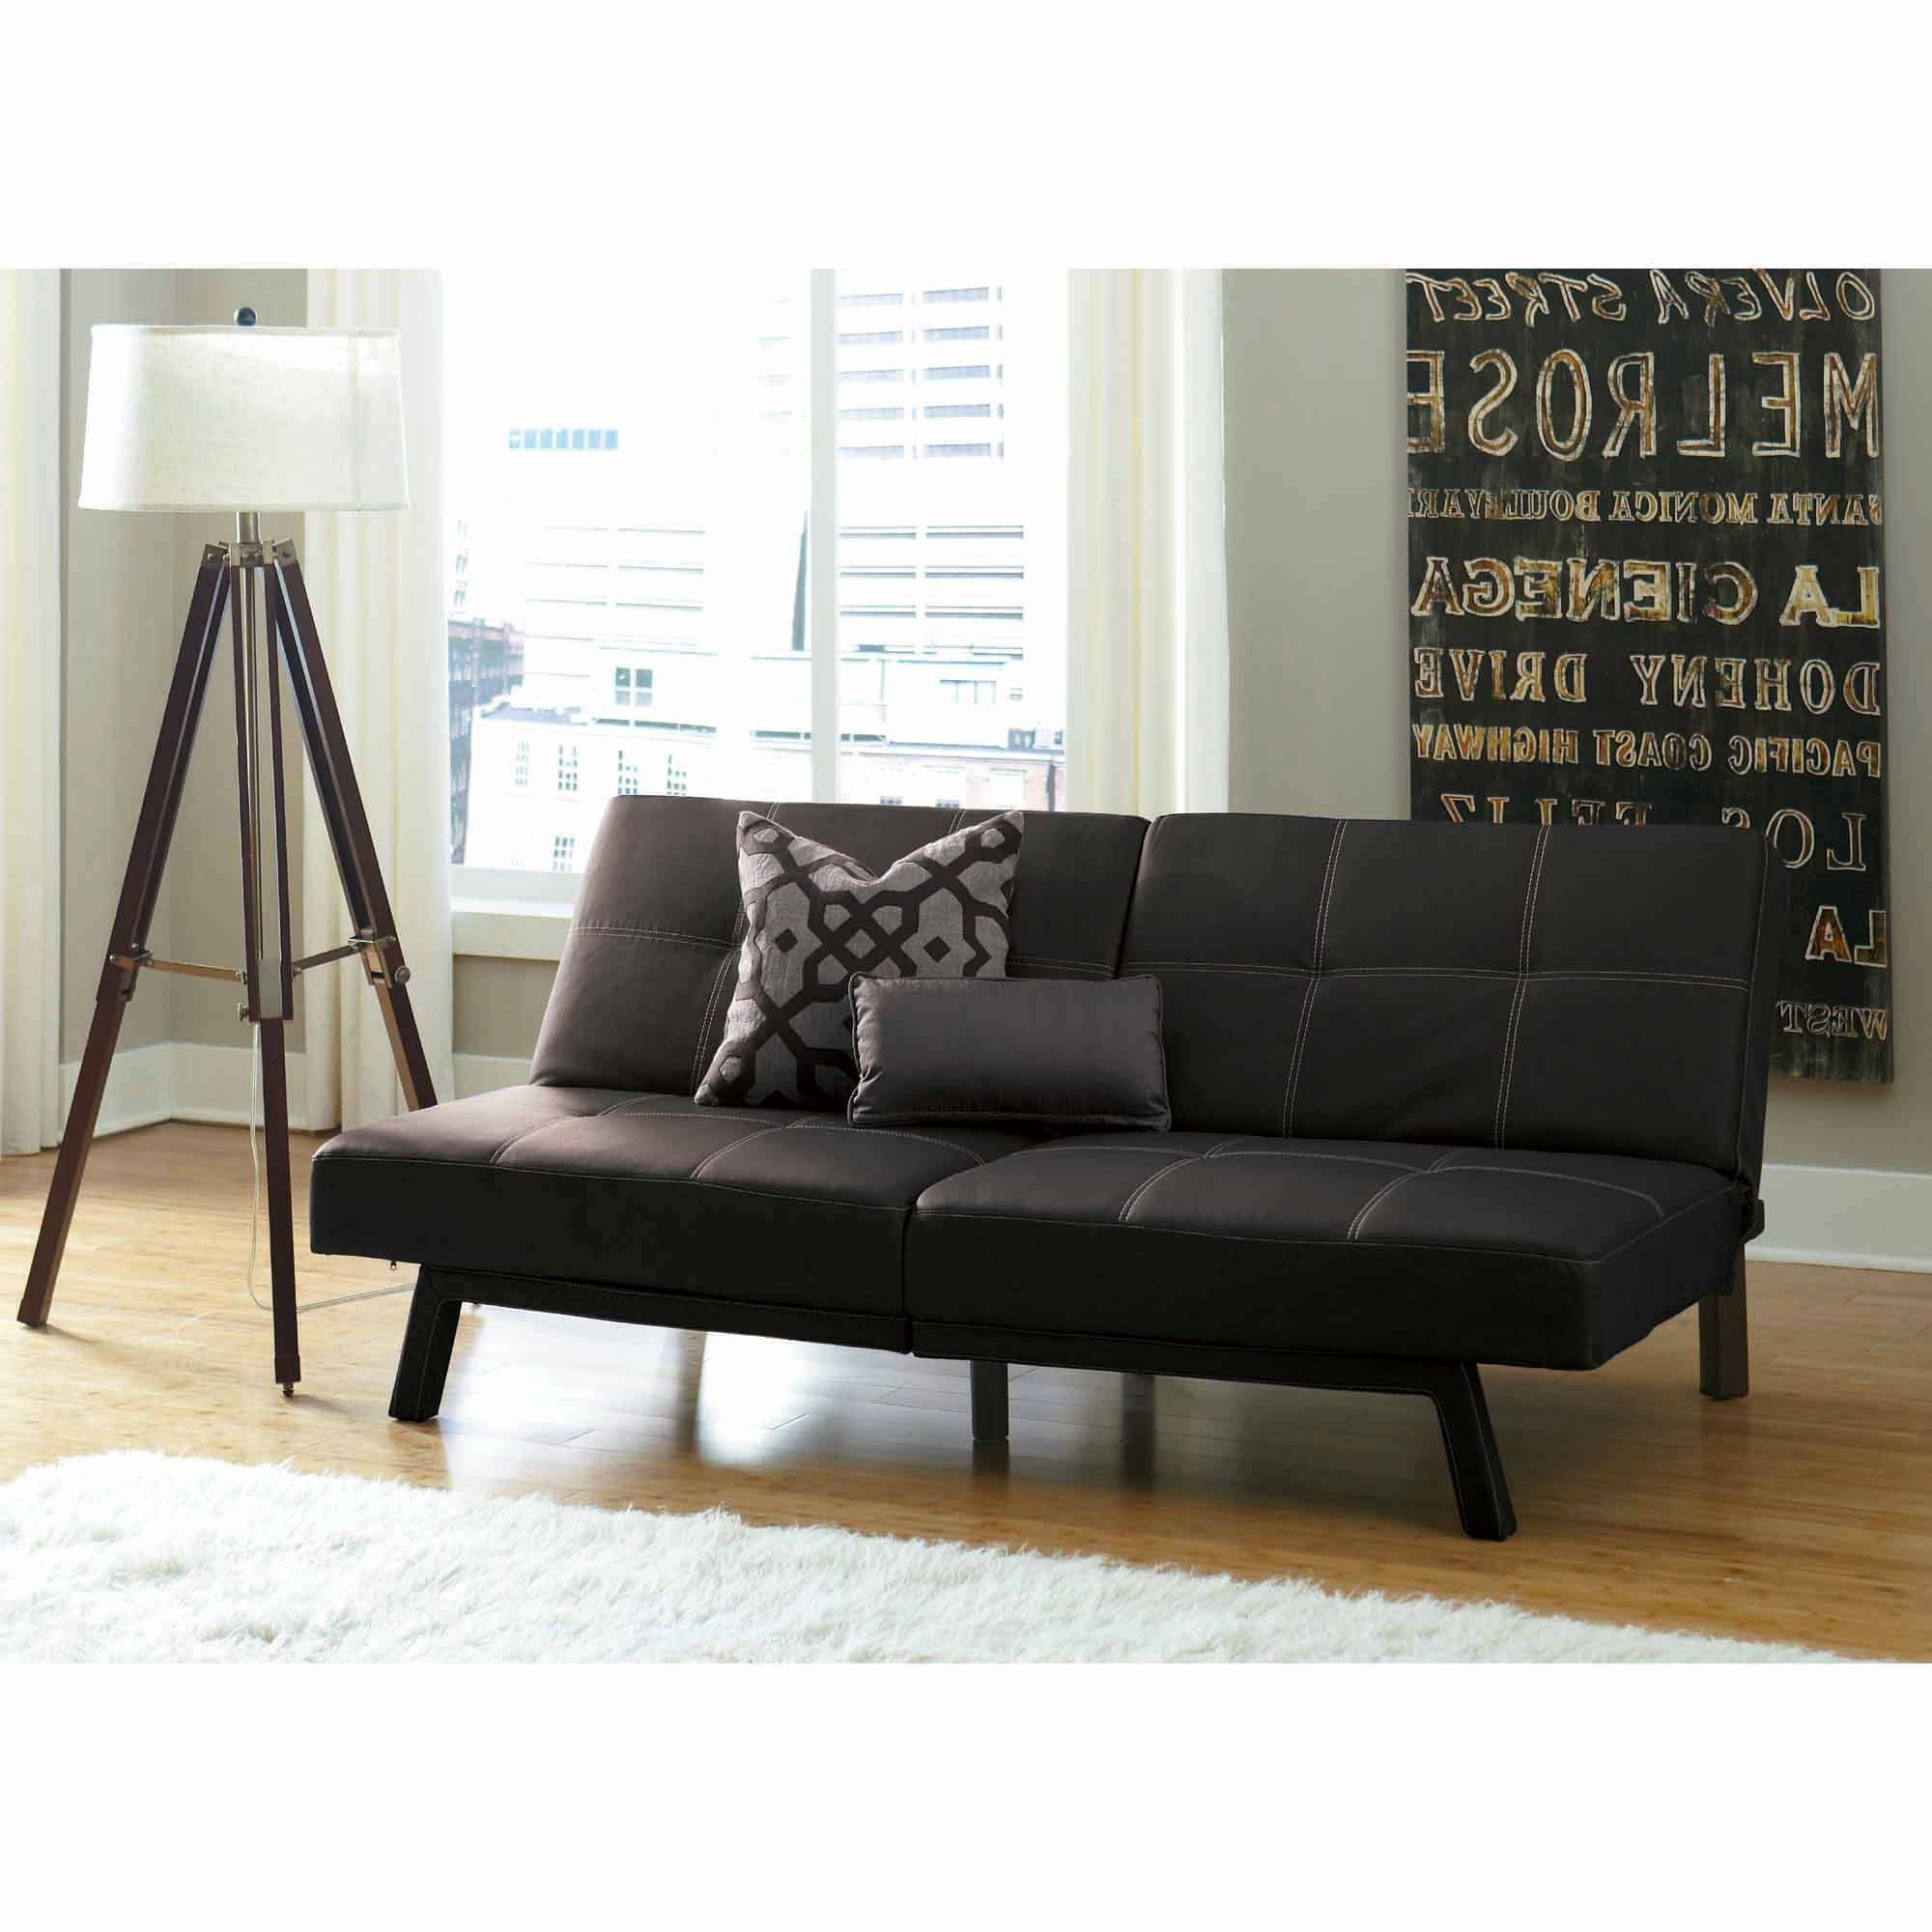 Lovely Sleeper Sofa Big Lots Photograpy Sleeper Sofa Big Lots Fresh Sofa Big Lots Sofa Bed Exquisite Big Lots Fu Cheap Sofa Beds Sofa Bed Set Loveseat Sofa Bed